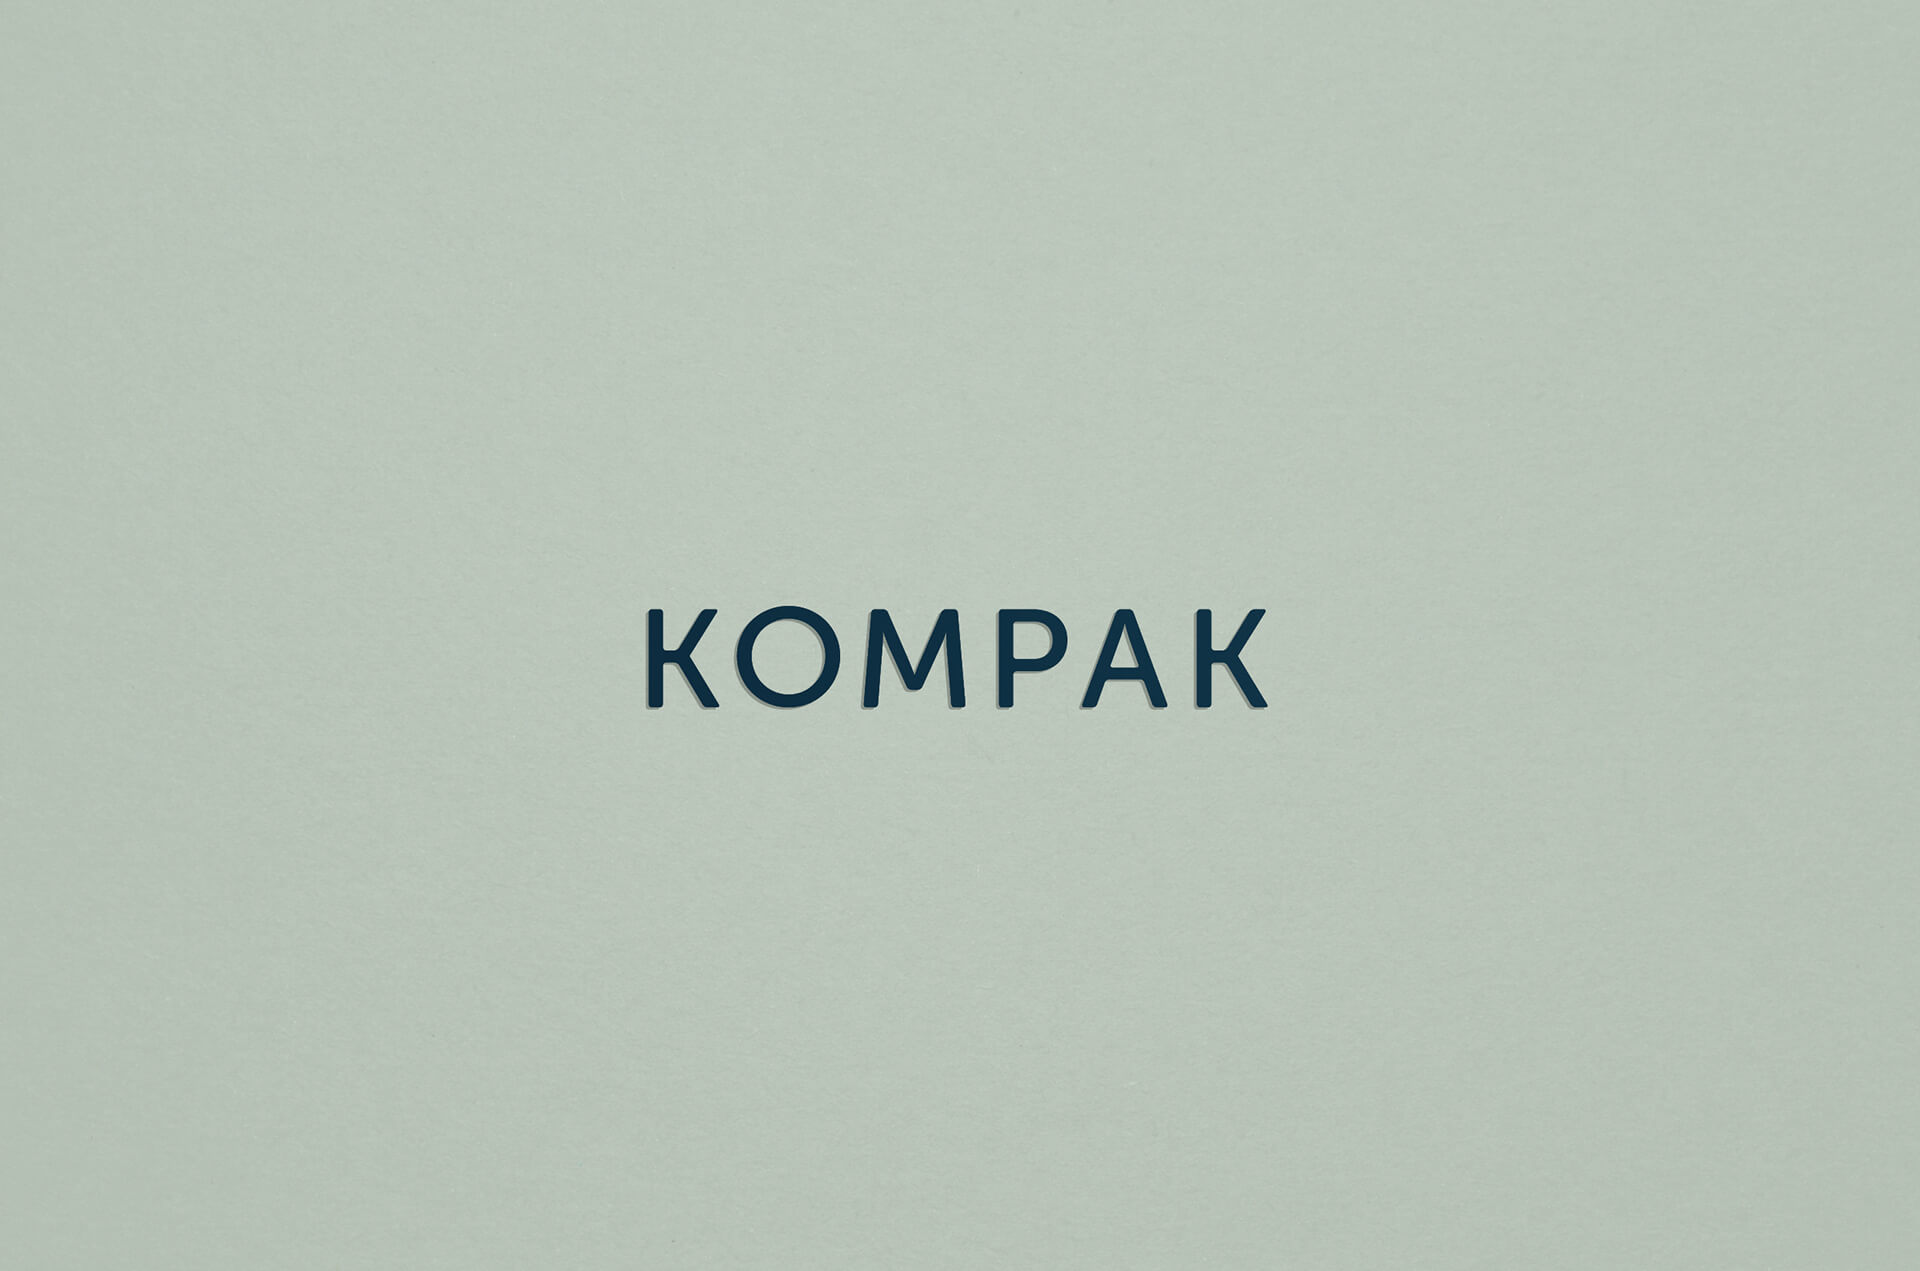 kompak ux ui branding by markos-esther